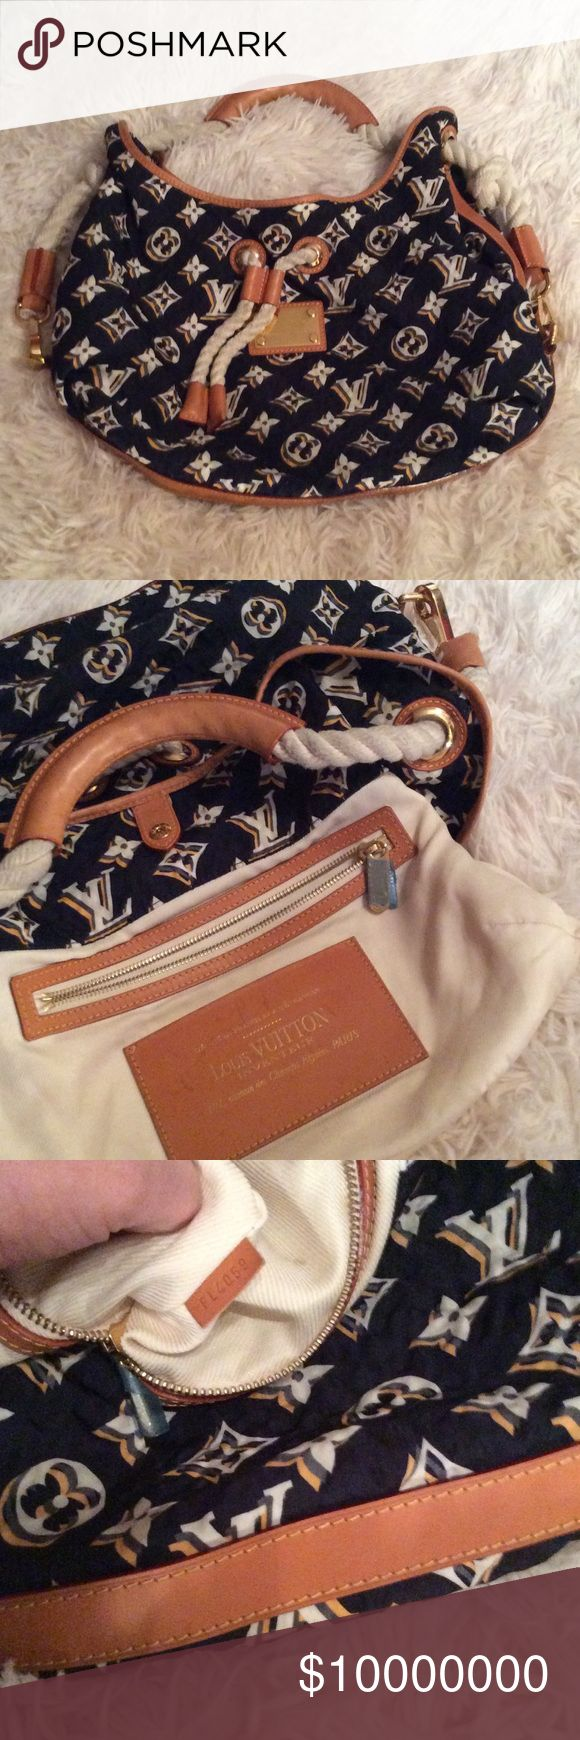 Louis Vuitton Limited Edition Cruise Bulles GM Limited release authentic Louis Vuitton Canvas Monogram Cruise Bulles GM Navy. Finely crafted of navy tone canvas with a LV monogram in ivory, white, and yellow. Features natural leather trim and a top handle with a leather grip and a rope cinch cord. Opens to a fabric interior with zipper and patch pockets. Questions or more pictures comment below or my 📧 is located under the 'About' tab. Louis Vuitton Bags